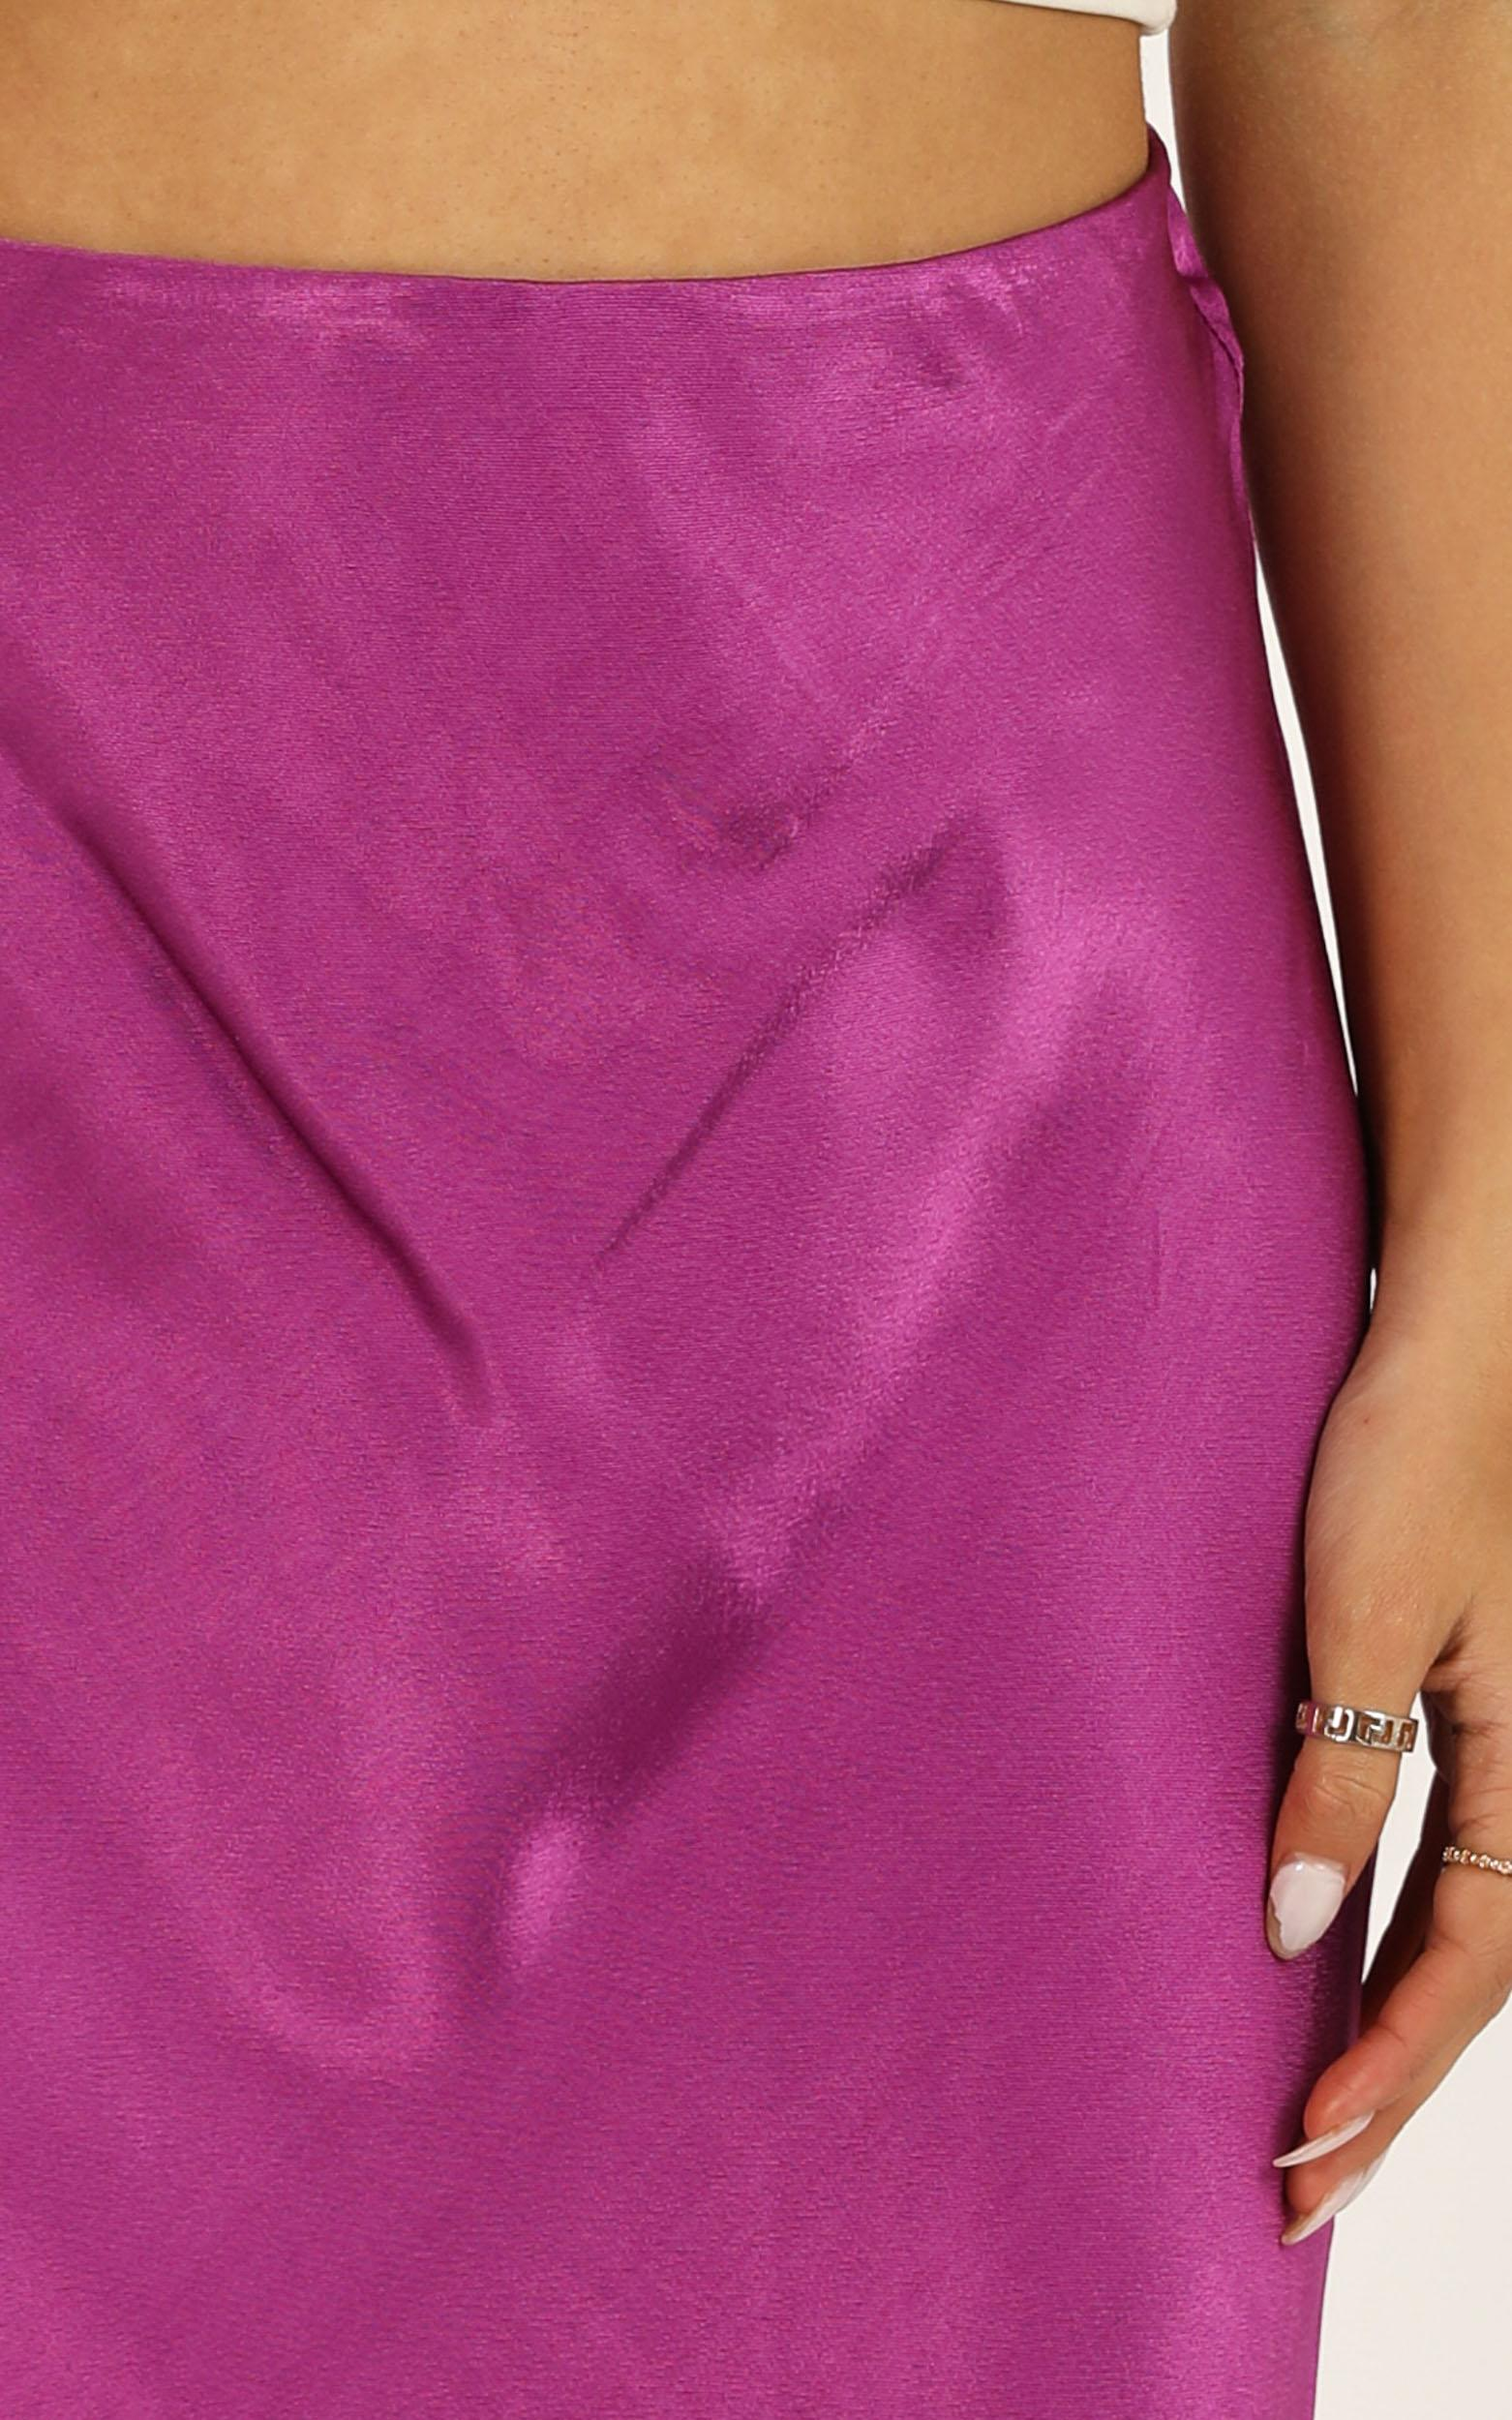 Closing Thought skirt in purple satin - 6 (XS), Purple, hi-res image number null